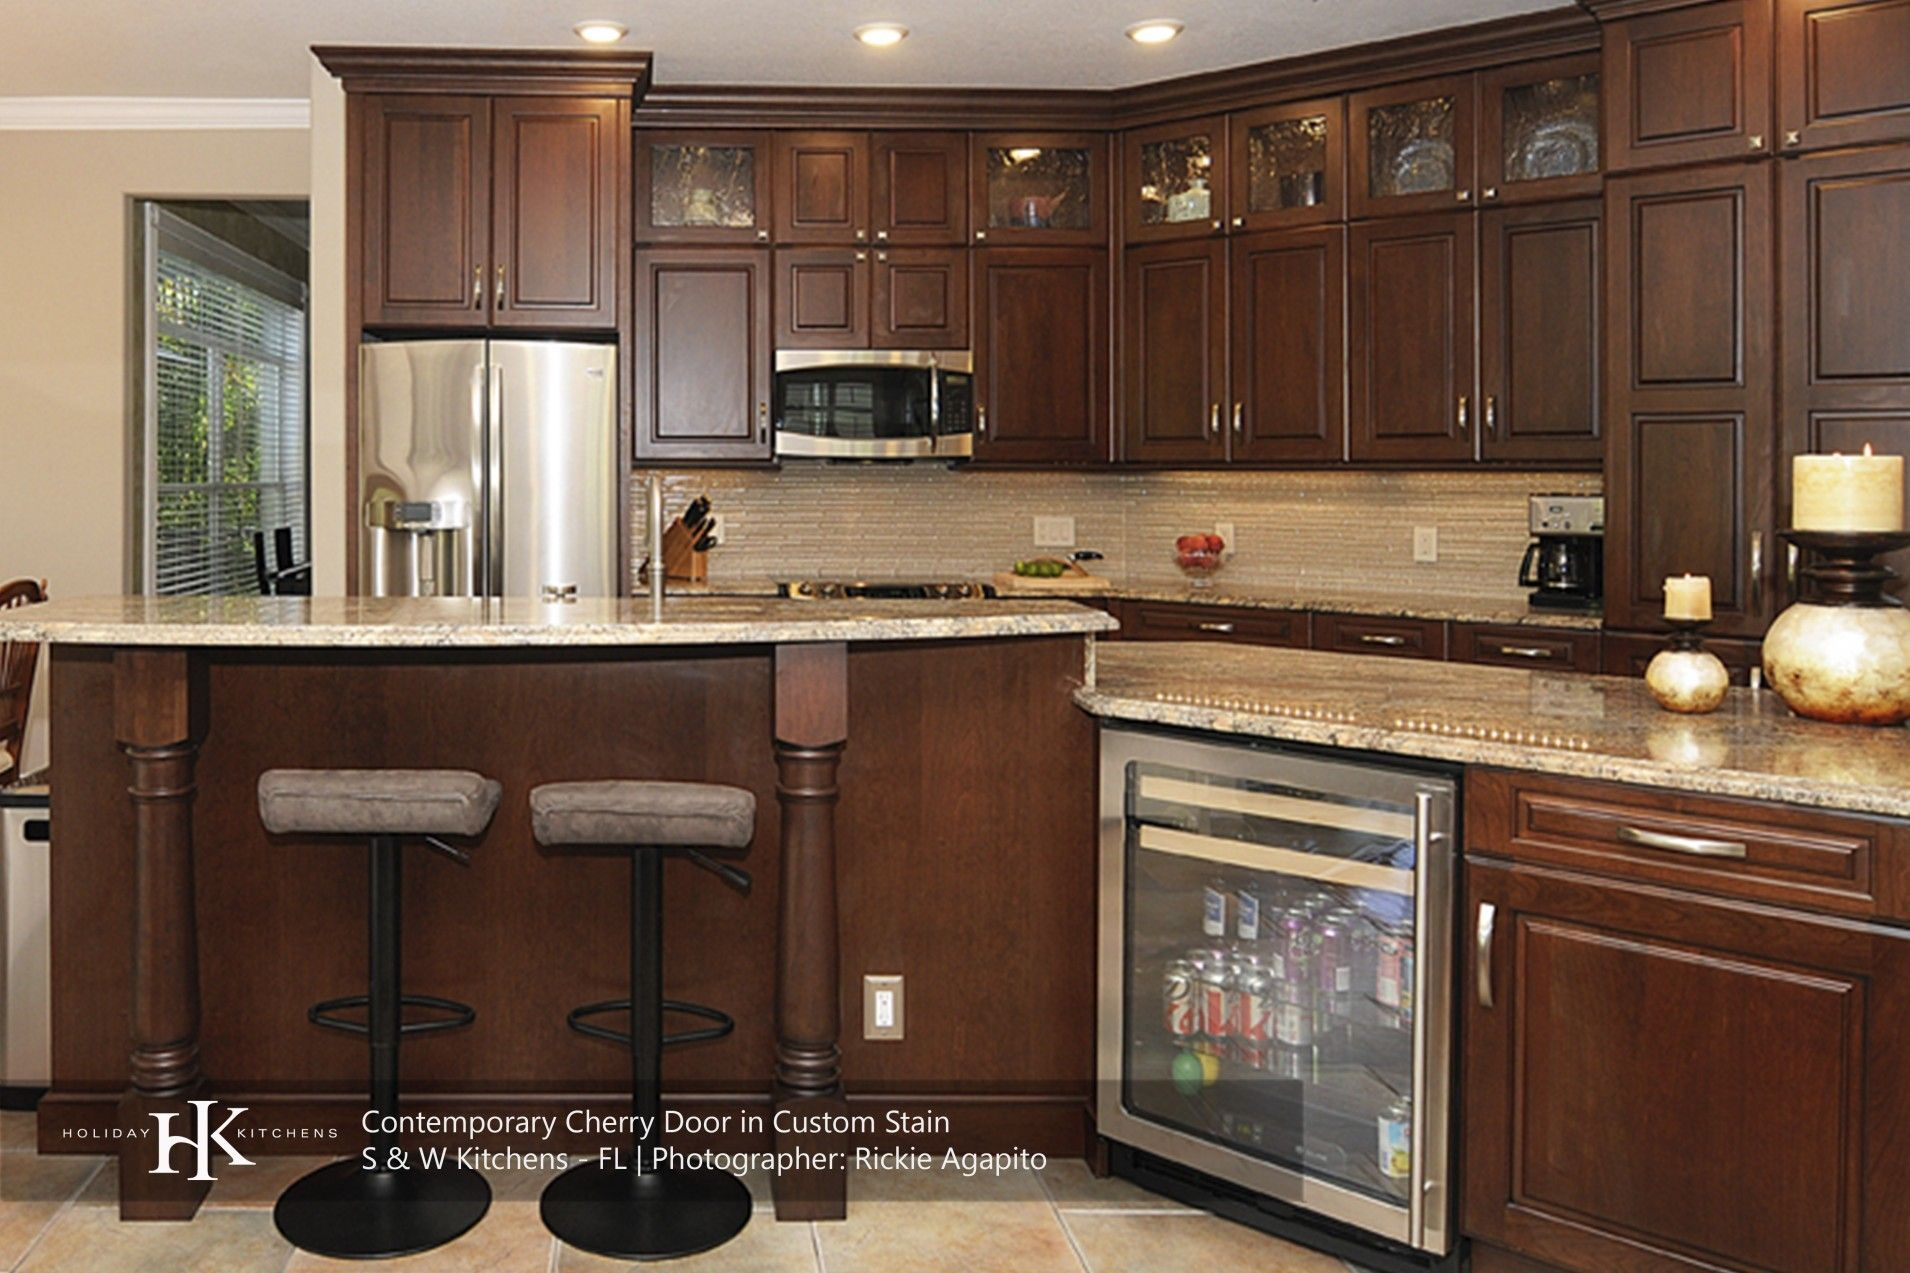 holiday kitchens rwh full access custom cabinetry is eco friendly